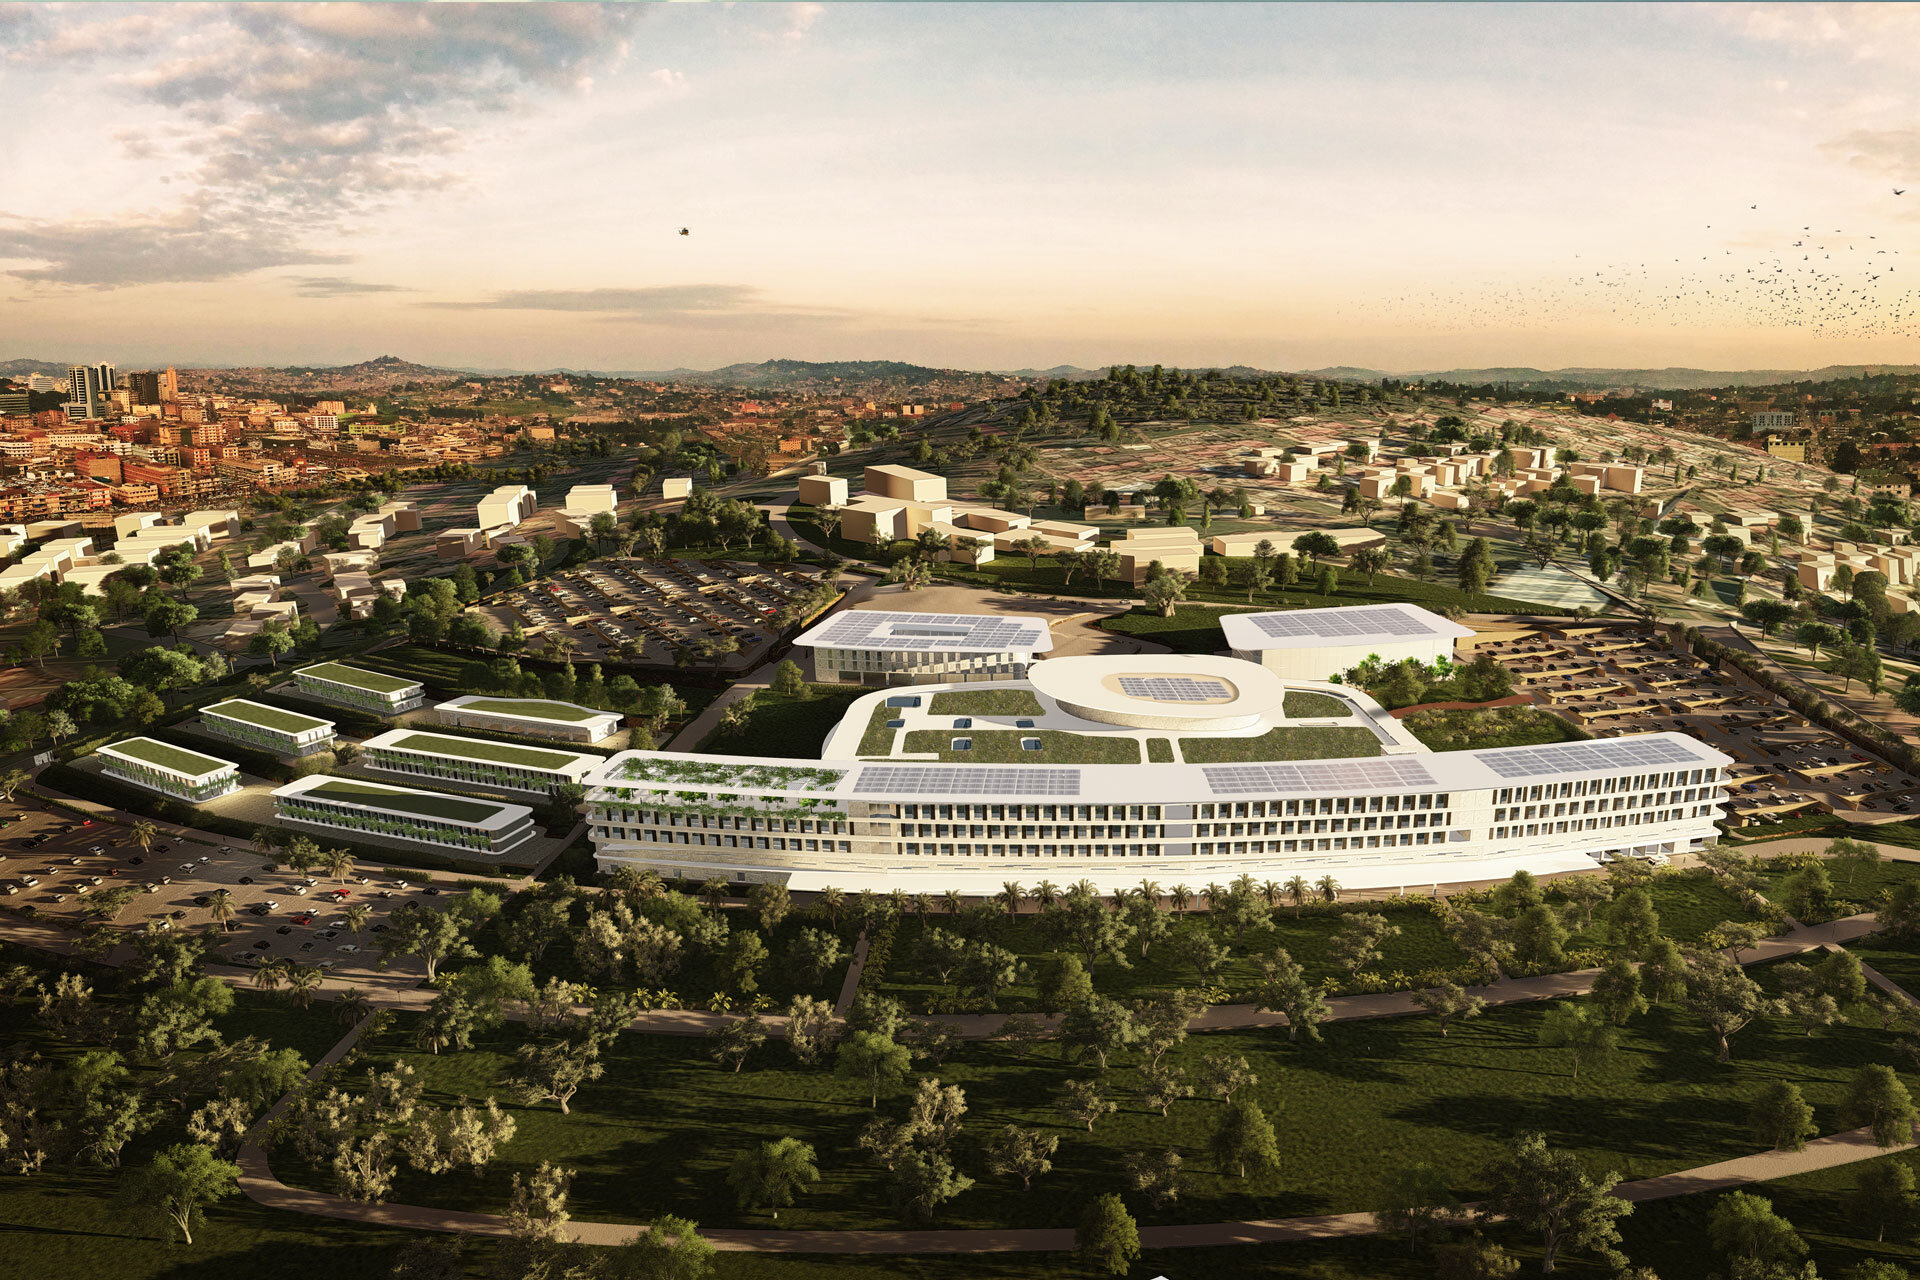 INTERNATIONAL HOSPITAL OF UGANDA 3